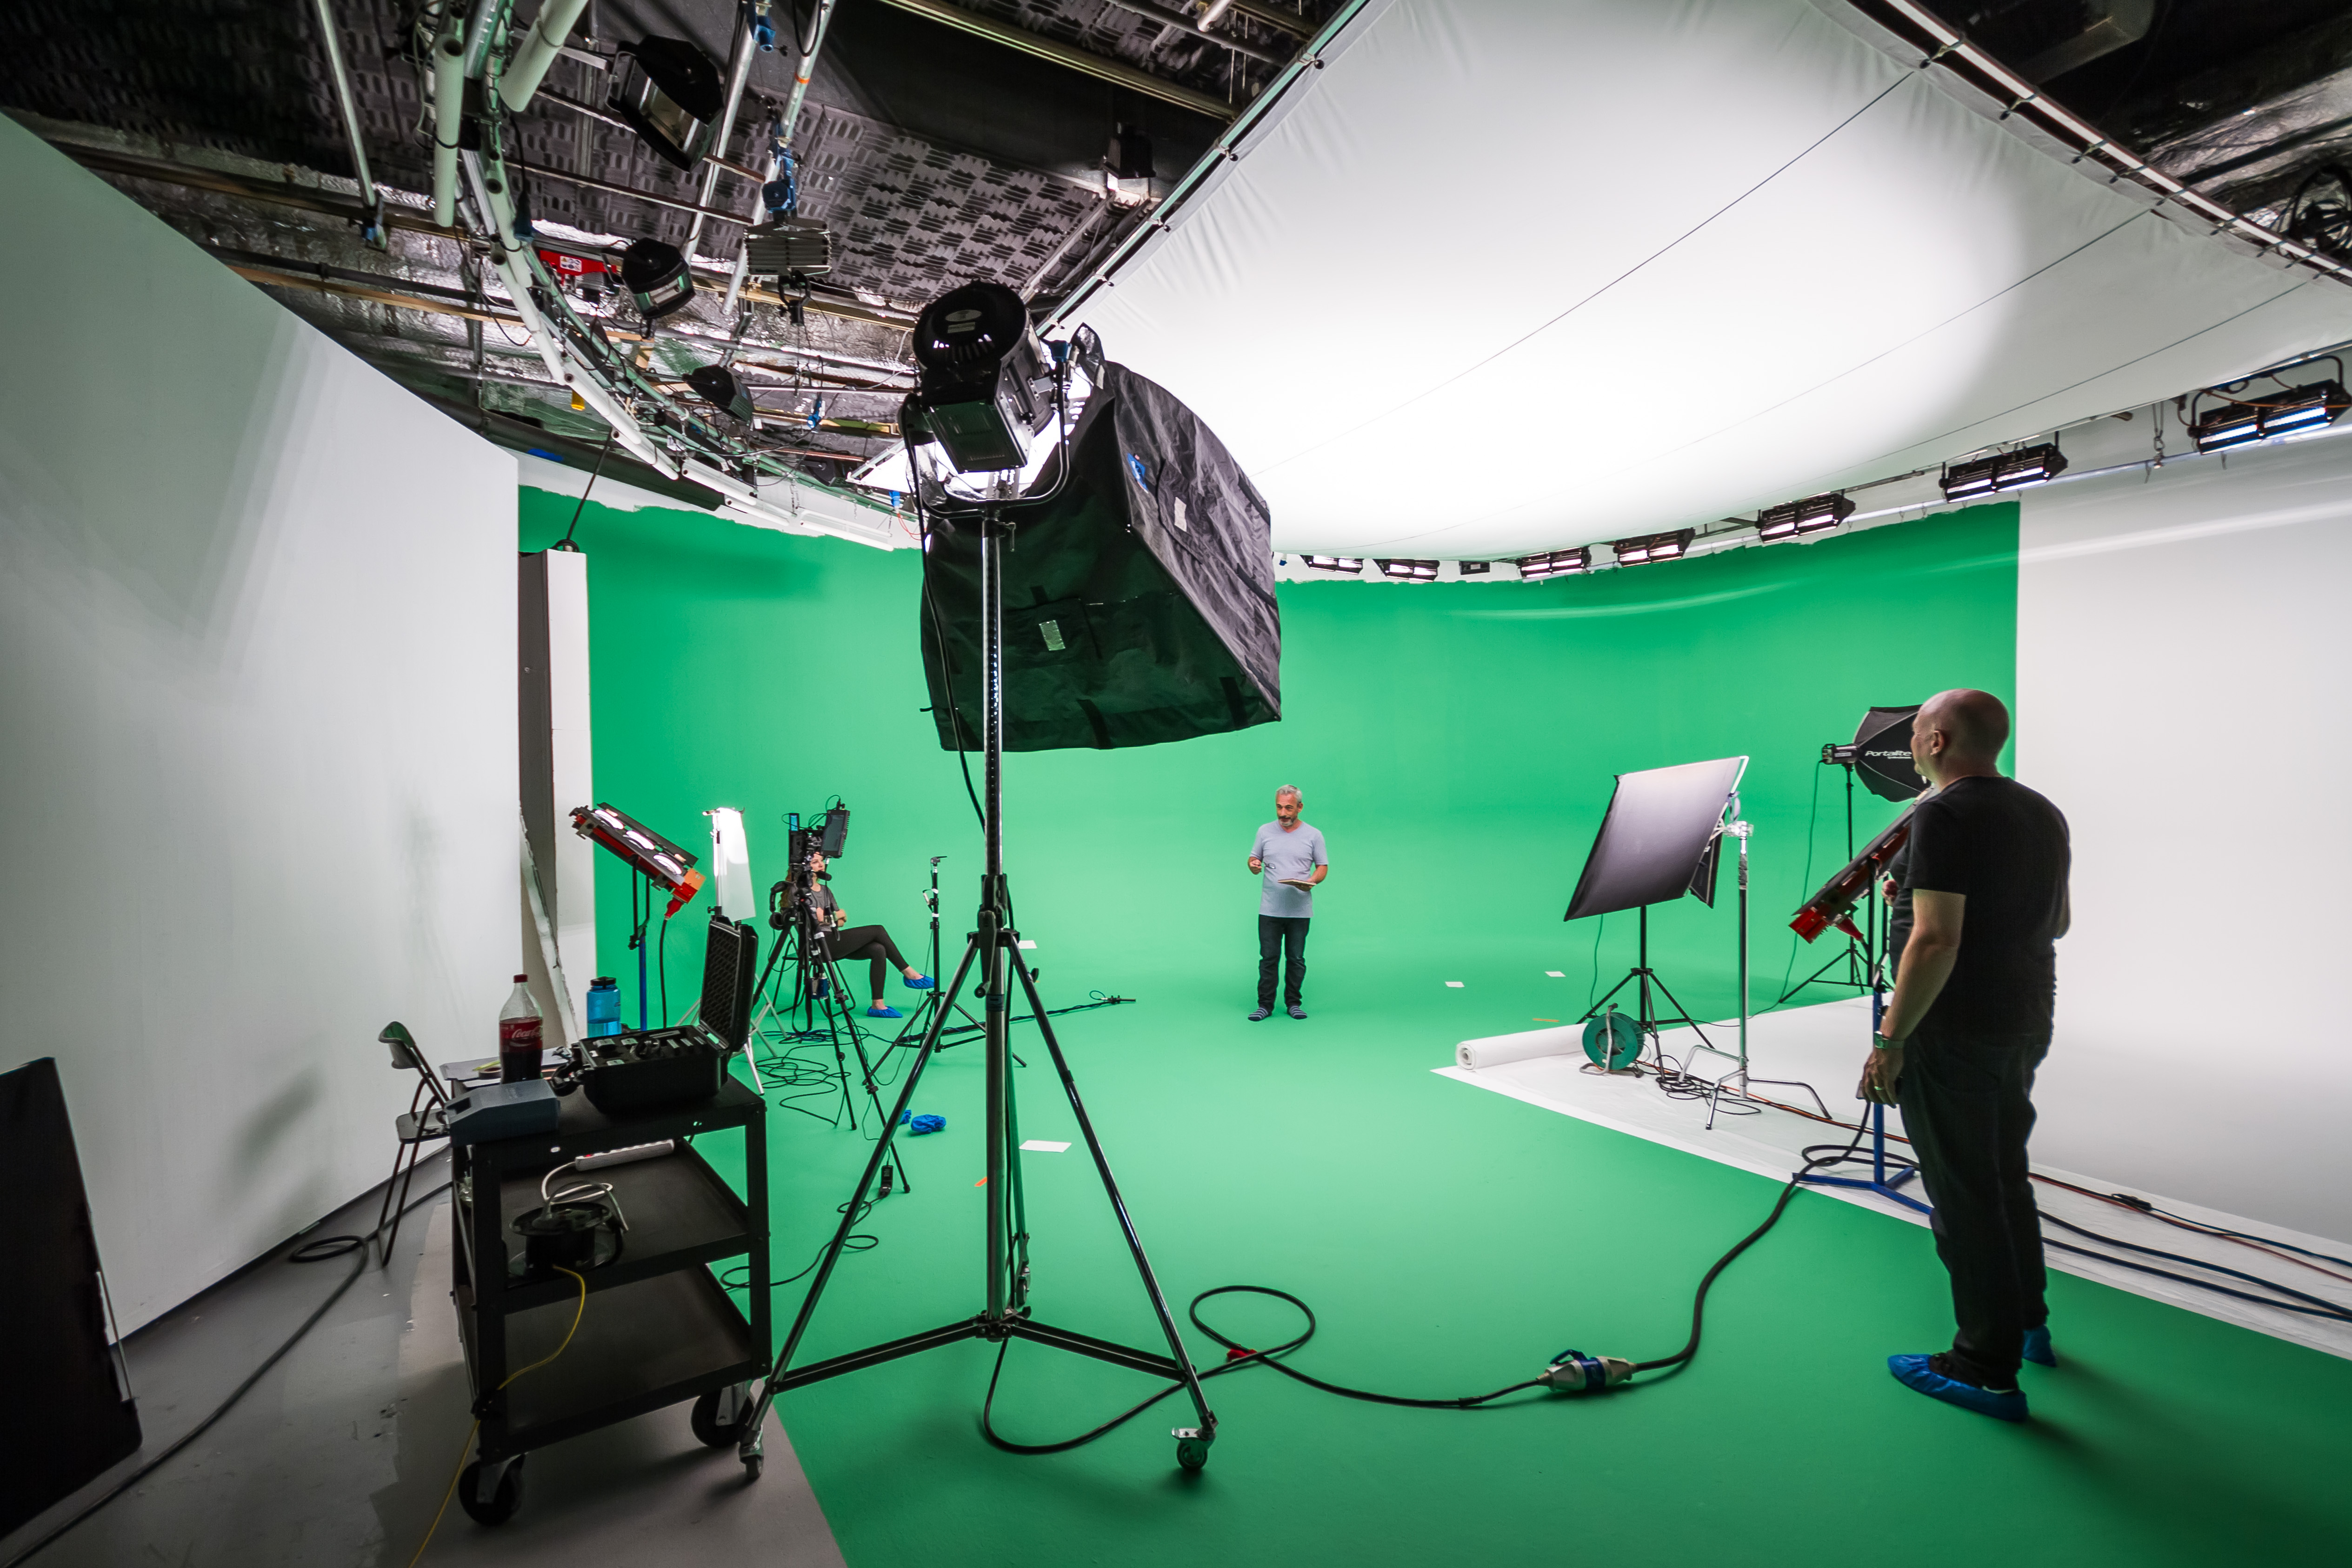 Bild externes Greenscreen-Studio